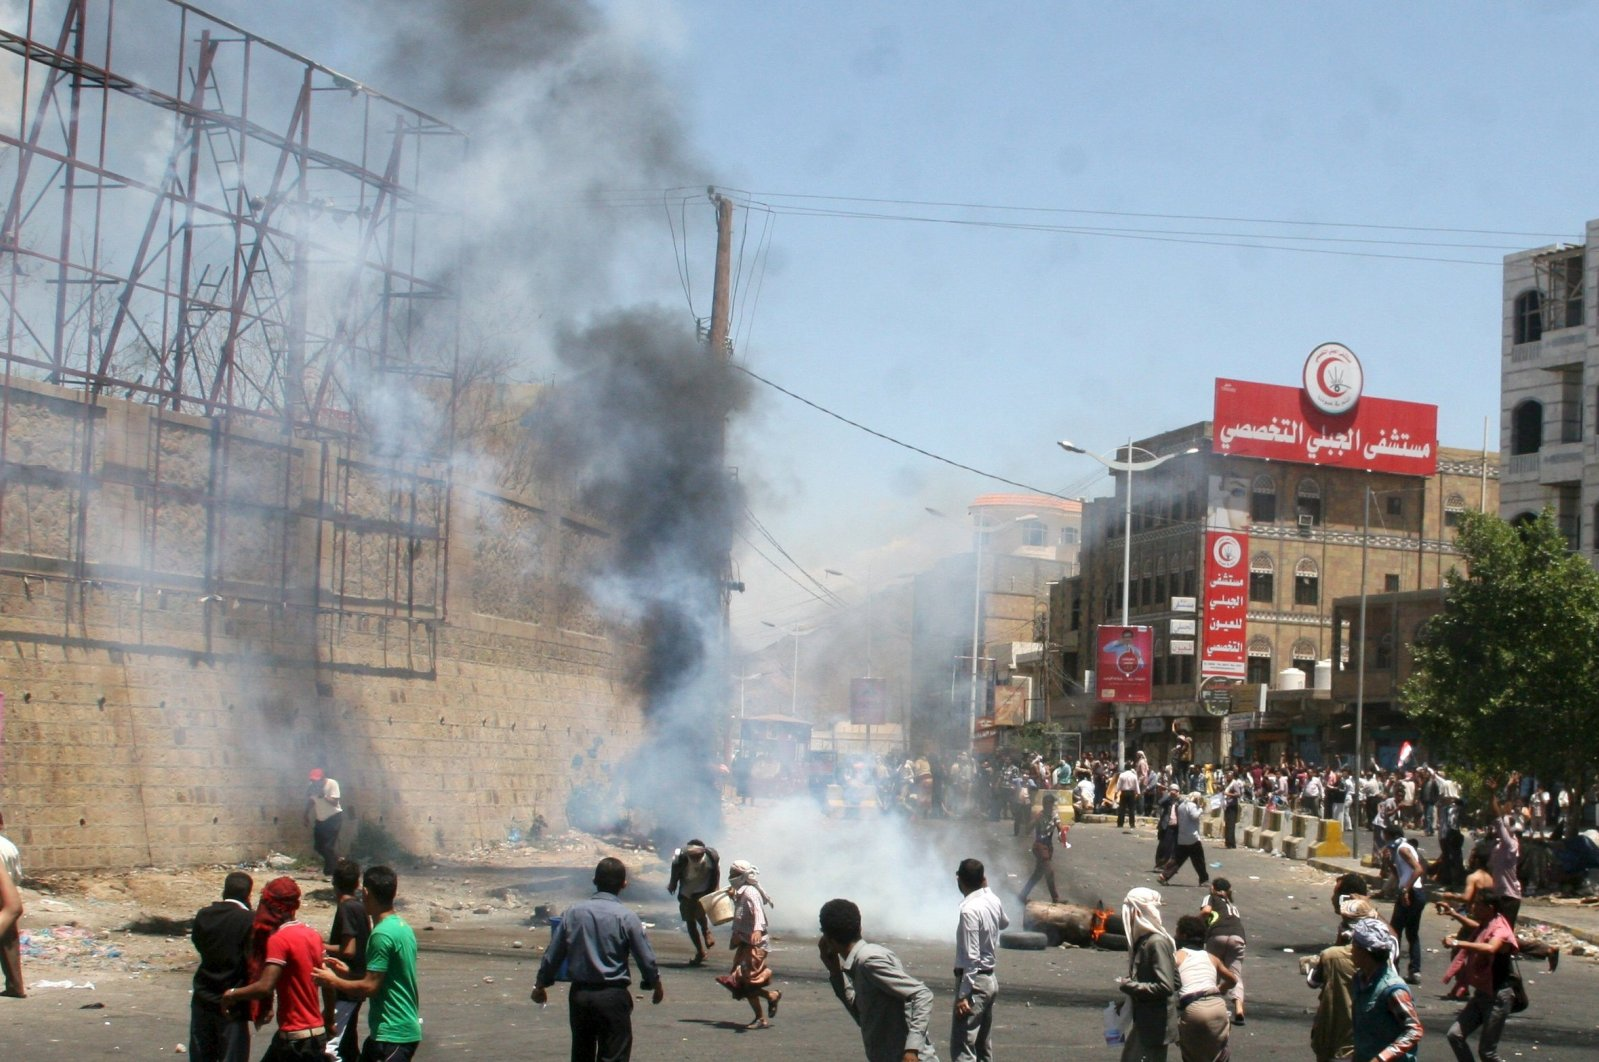 Anti-Houthi protesters demonstrate in Yemen's southwestern city of Taiz, March 22, 2015. (Reuters Photo)